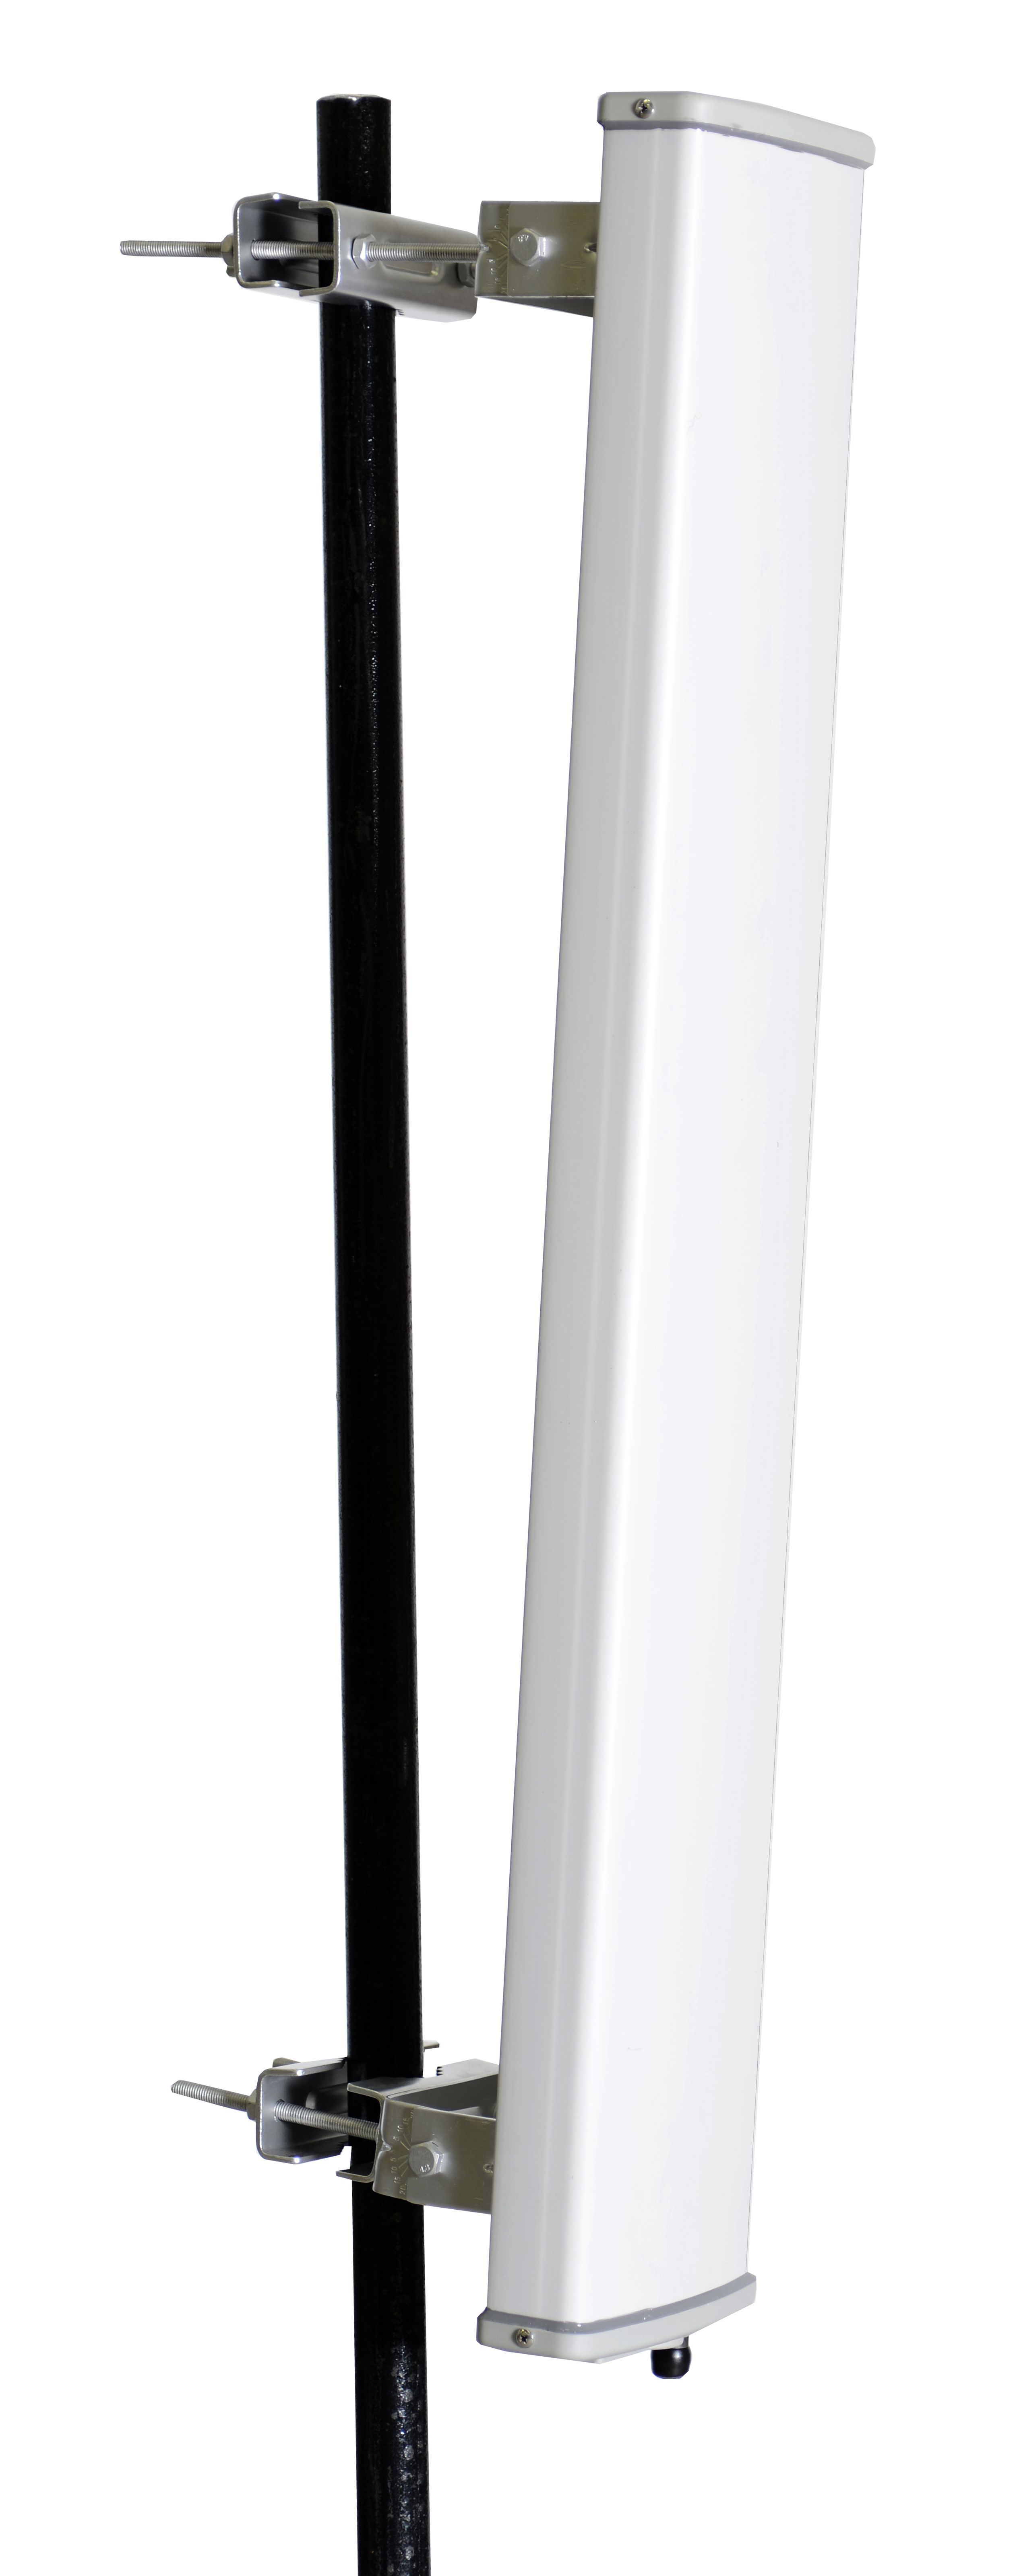 ANSE245X1N-65 Dual-Band 2.4 and 5.1 to 5.8 GHz Sector WiFi Antenna with 1 N Female Connectors and 65 Degree Horizontal Beawidth